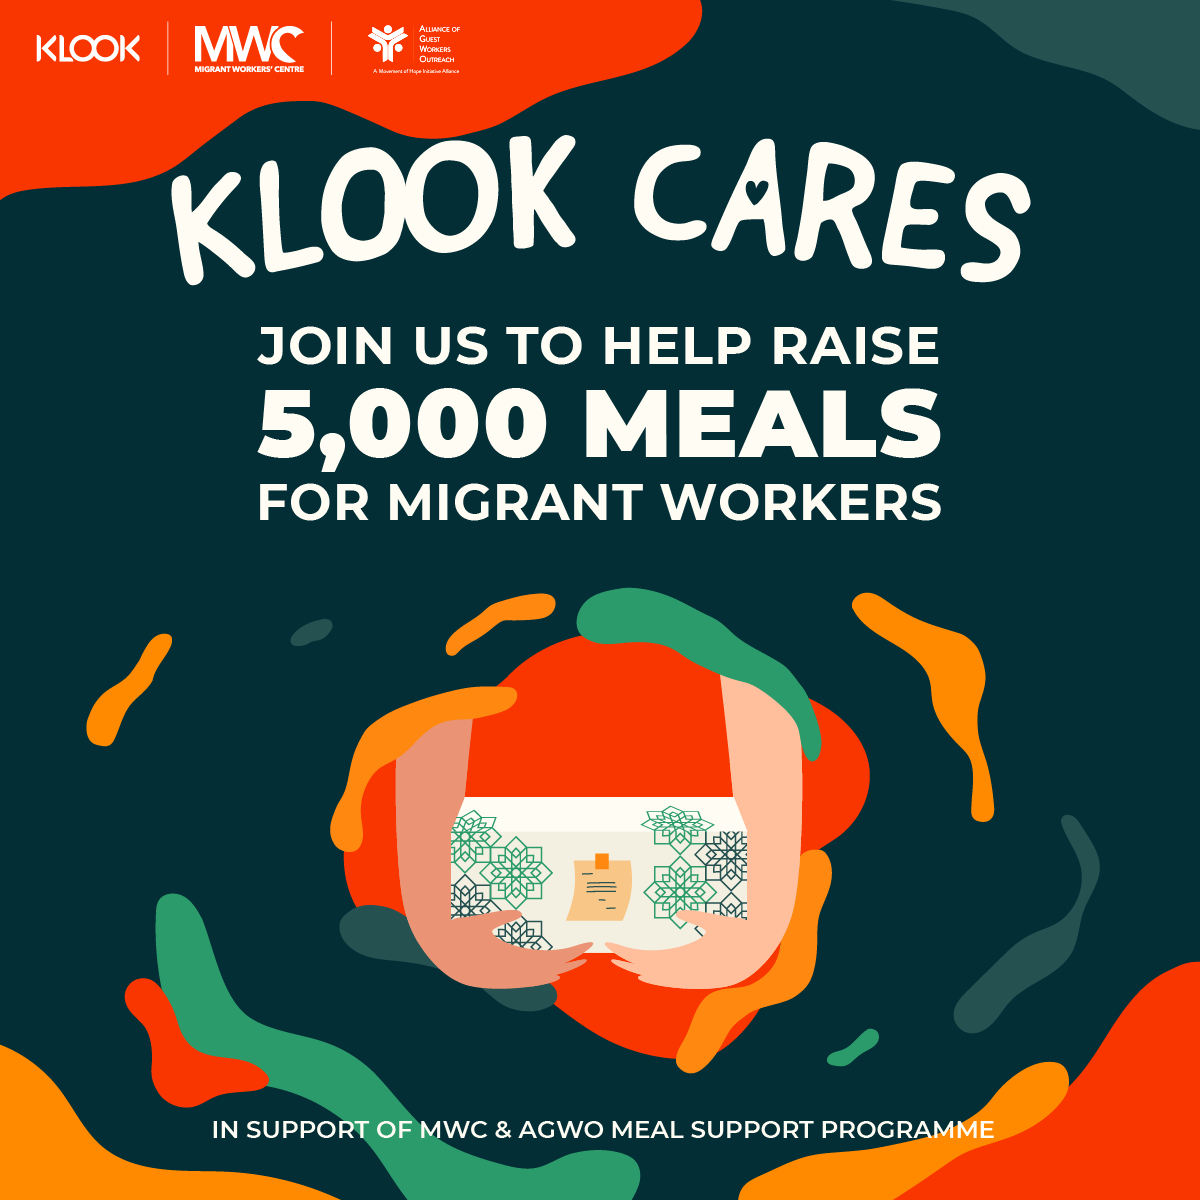 Klook Cares: Meals for migrant workers